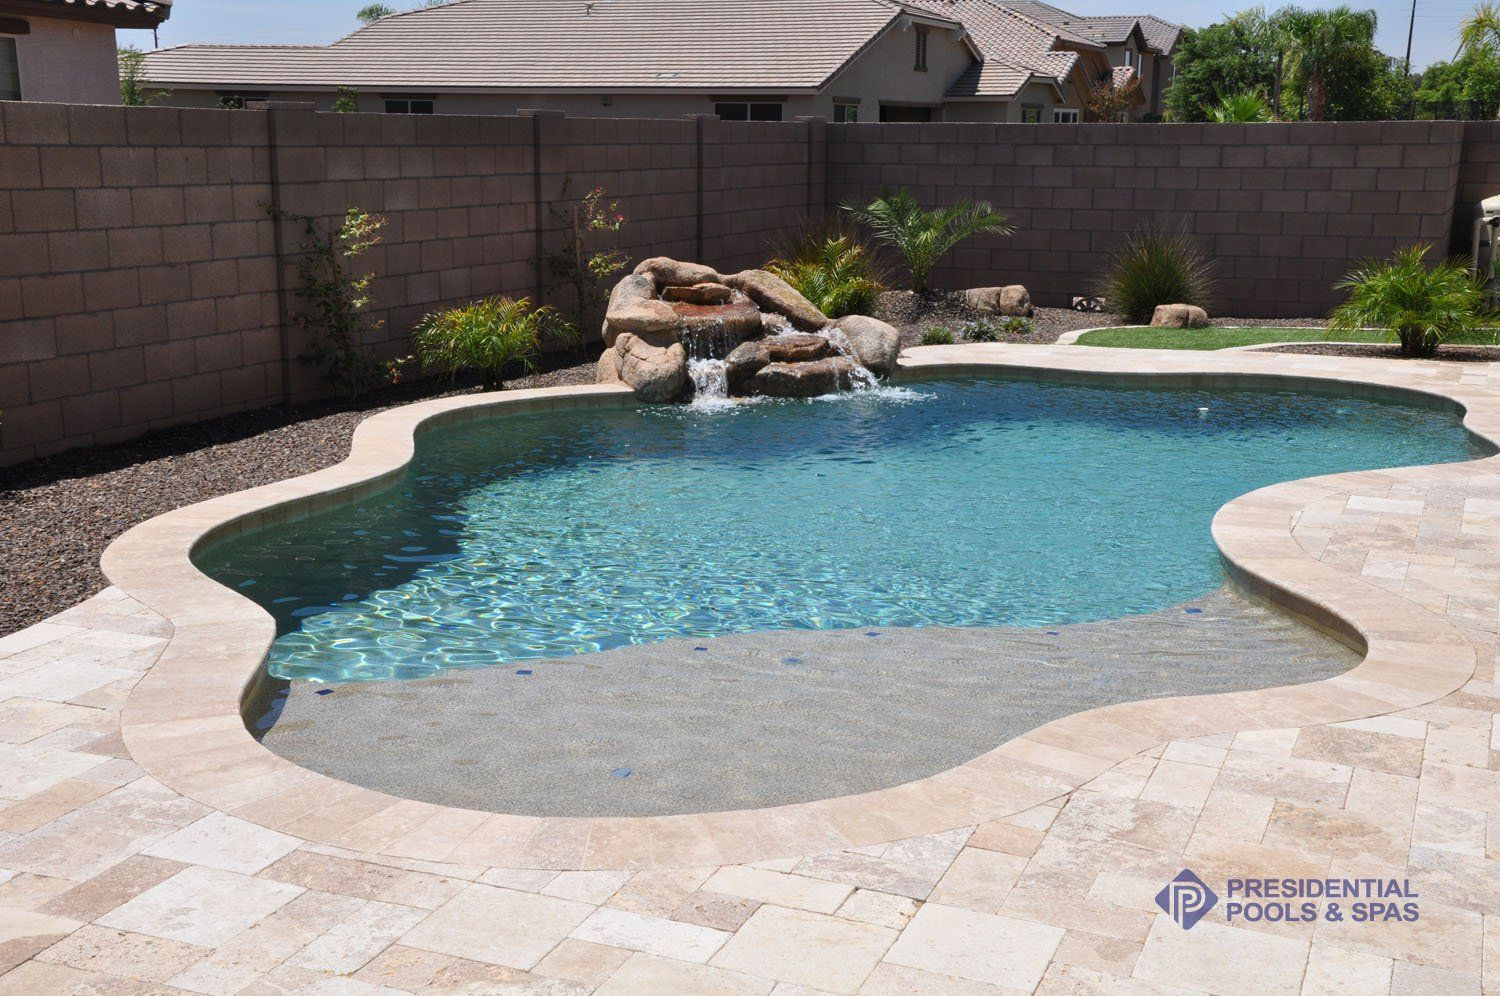 Simple and small pool with sand bar by presidential pools - Swimming pools for small backyards ...